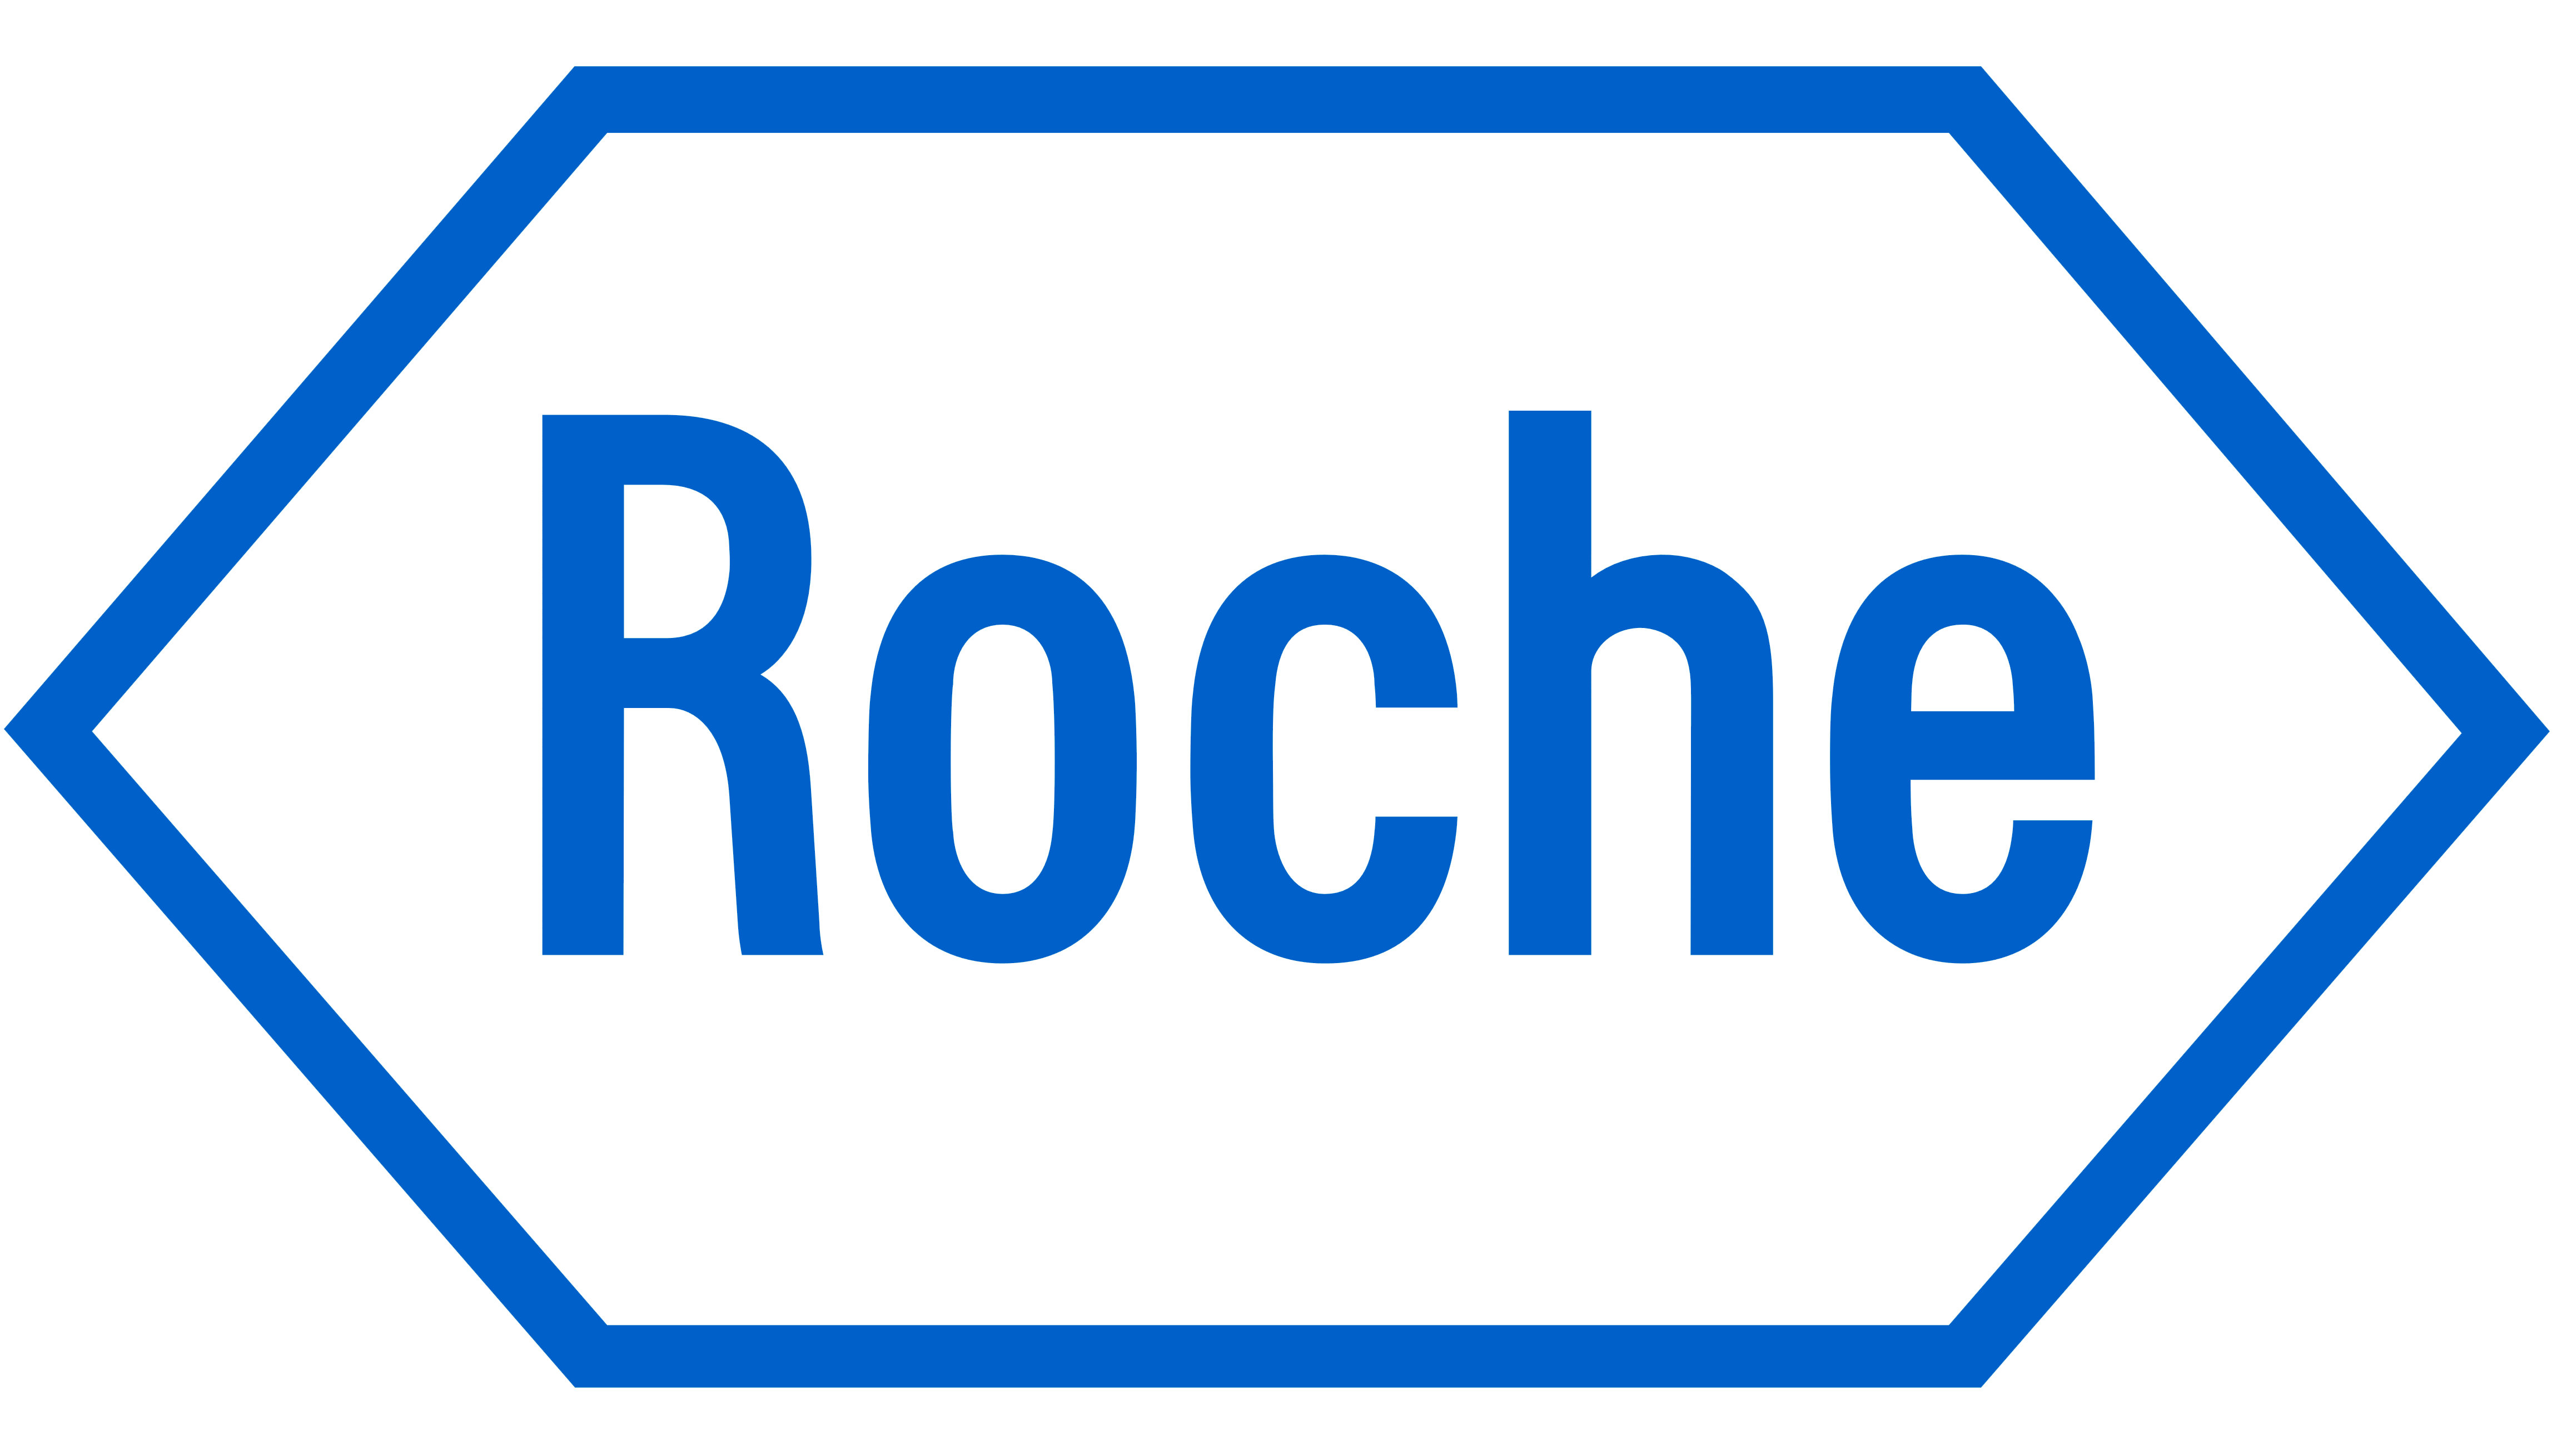 logo for Roche